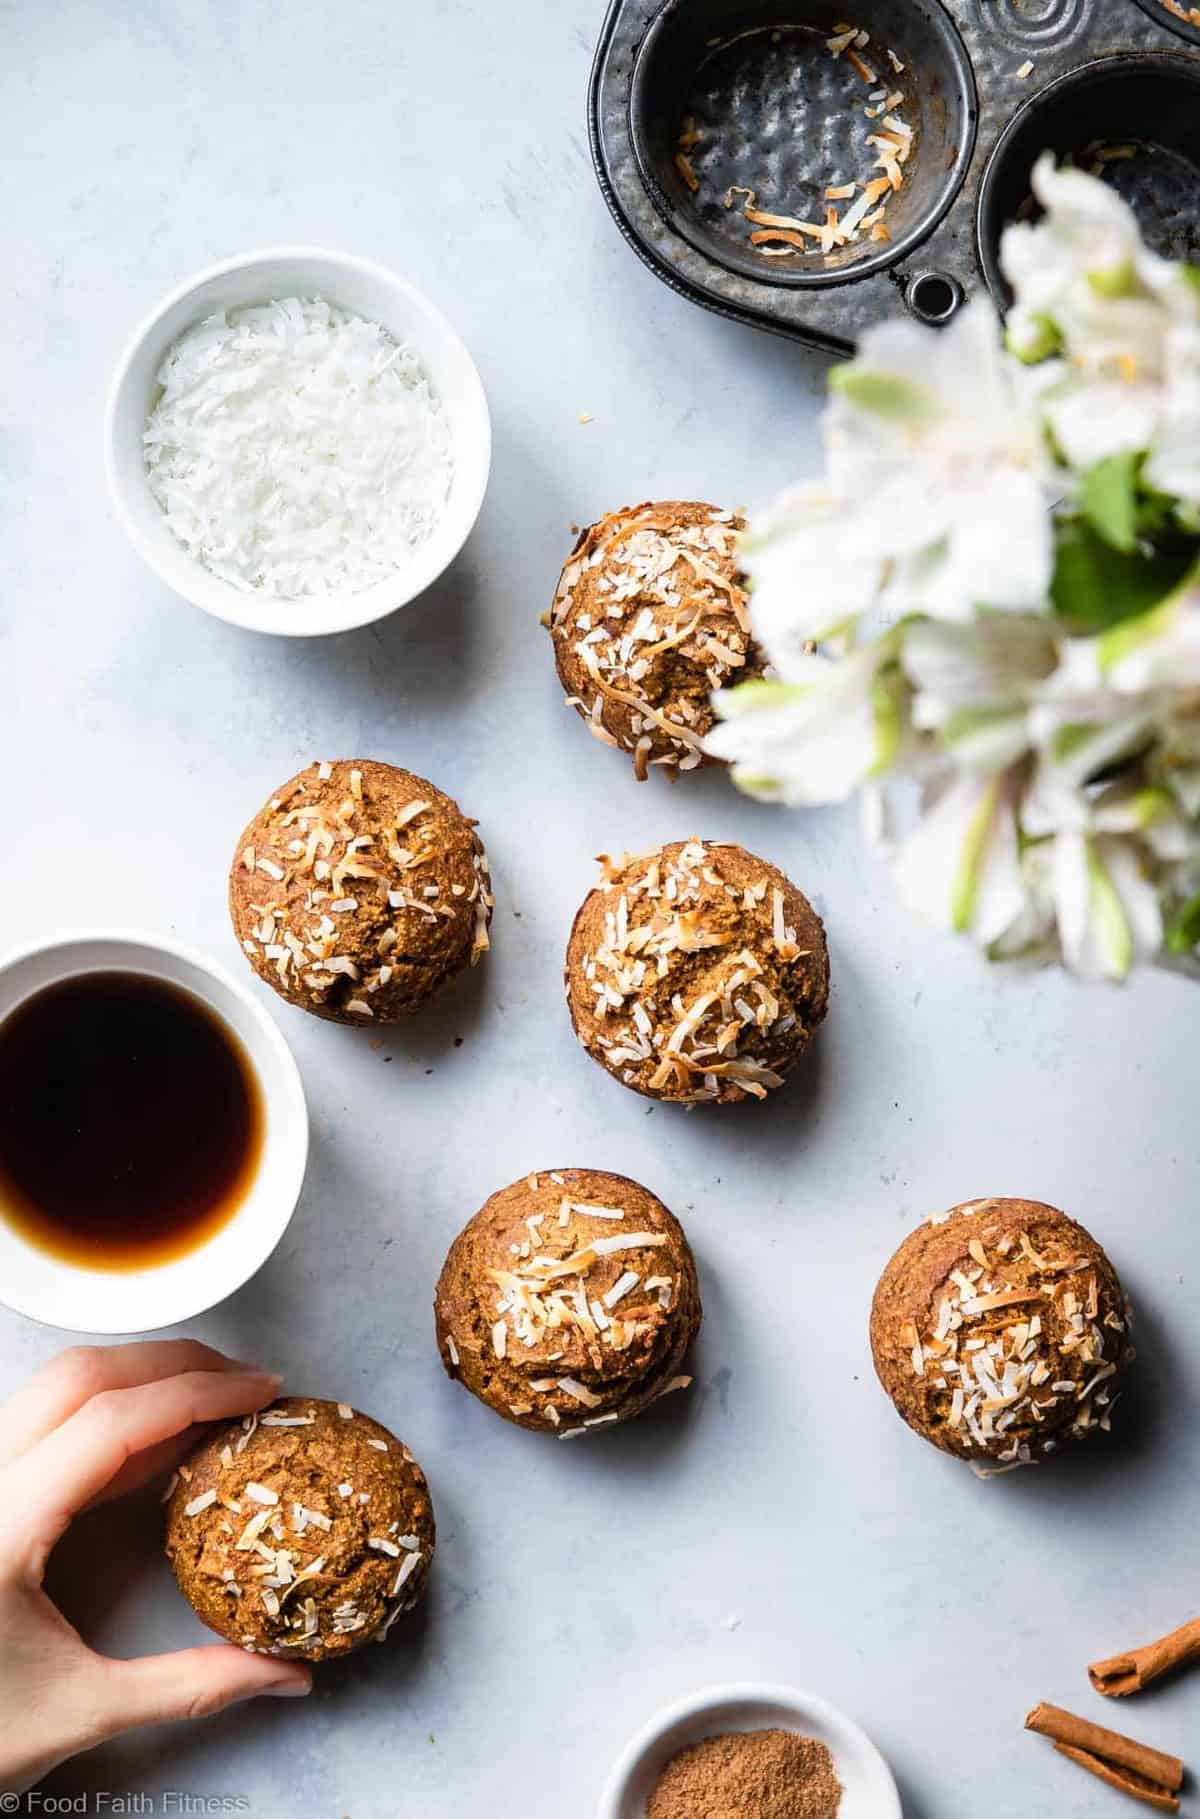 Sugar Free Gluten Free Oatmeal Carrot Muffins -These easy carrot muffins are naturally sweetened with dates andhave a surprise, spicy-sweet kick! SO light and fluffy! Gluten free, healthy and tasty! | #Foodfaithfitness |